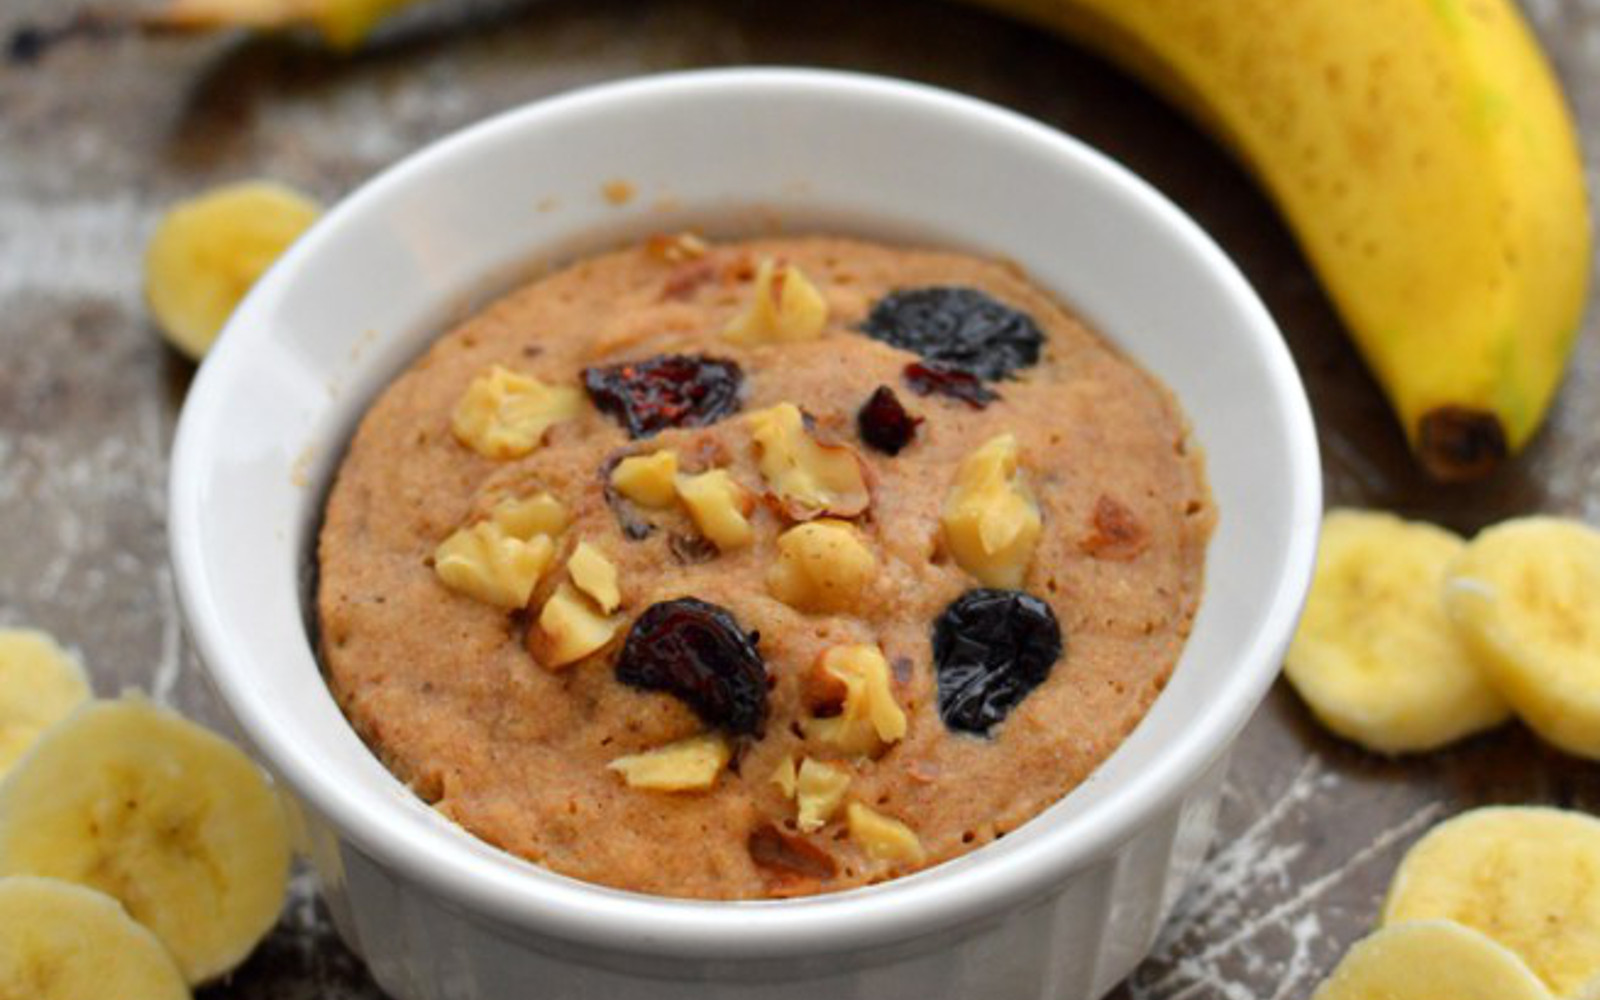 Vegan GLuten-Free Banana Bread Mug Cake with nuts and raisins